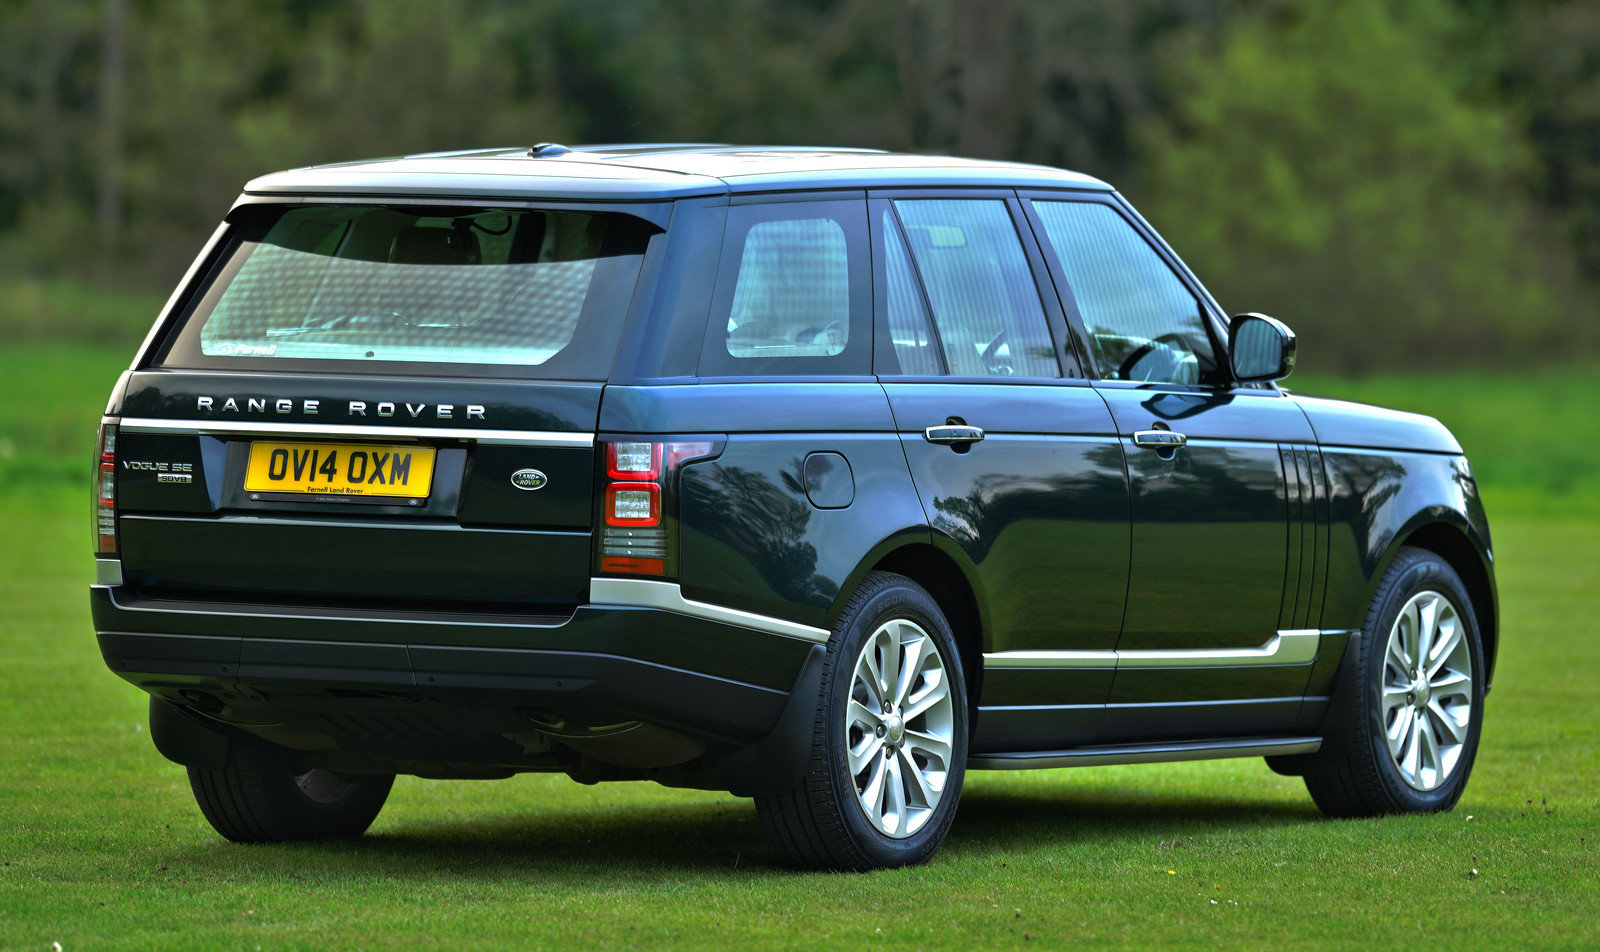 2014  LAND ROVER RANGE ROVER 4.4 SDV8 VOGUE SE 5DR AUTOMATIC SOLD (picture 2 of 6)